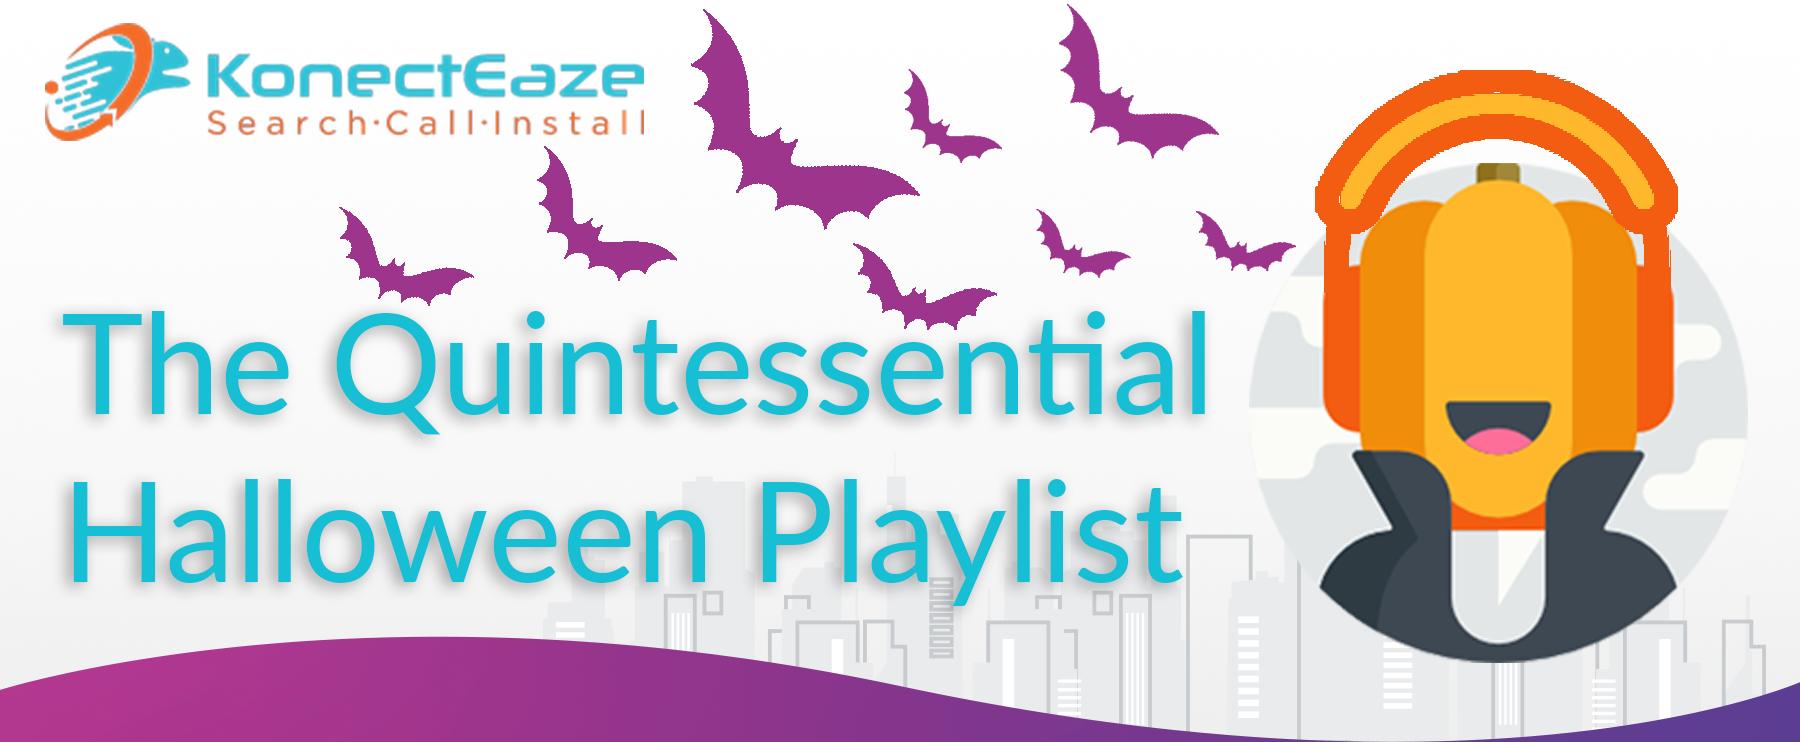 The Quintessential Halloween Playlist